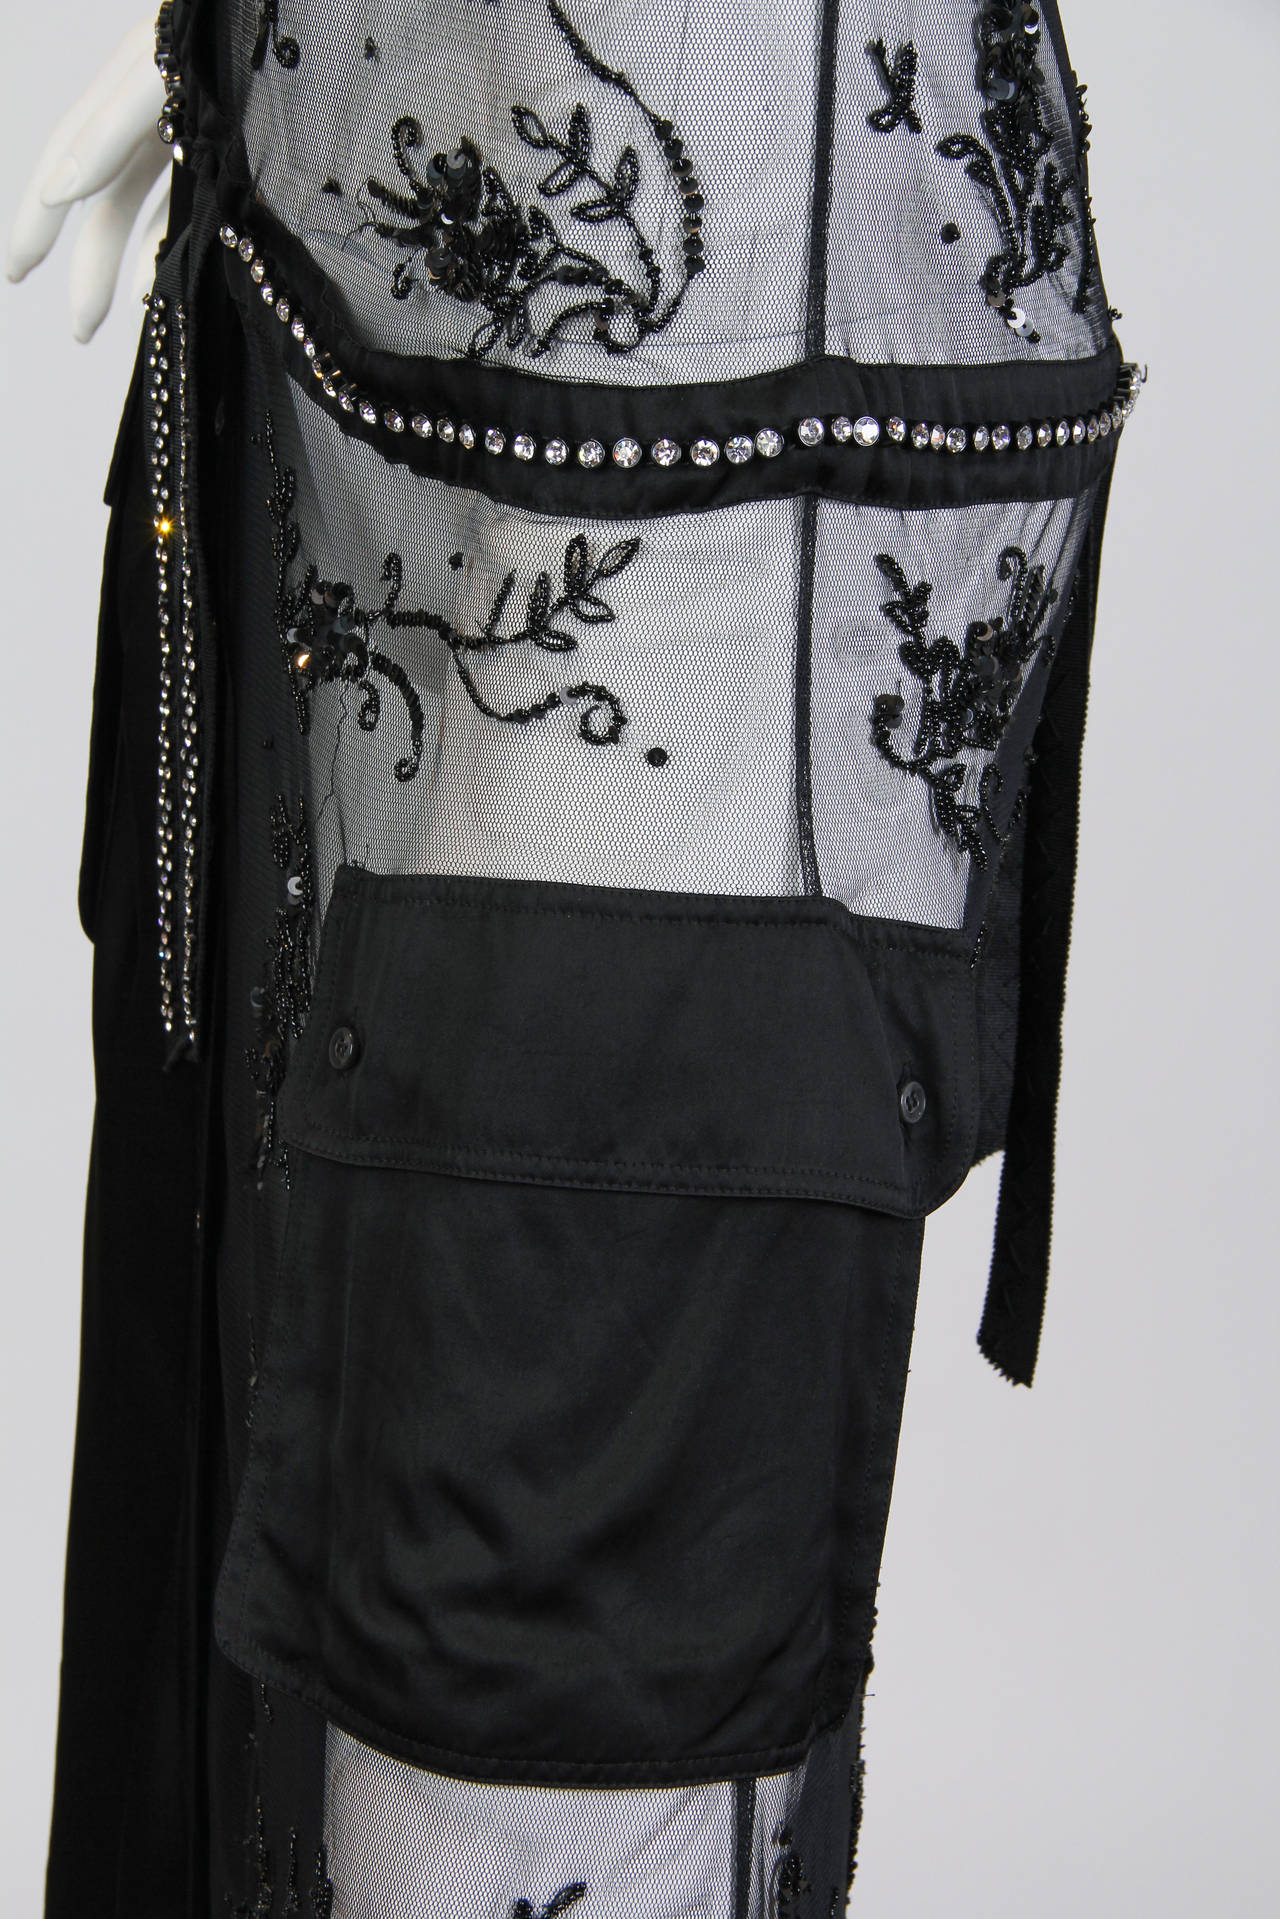 Deconstructed Moschino Asymmetrical Beaded Dress For Sale 2